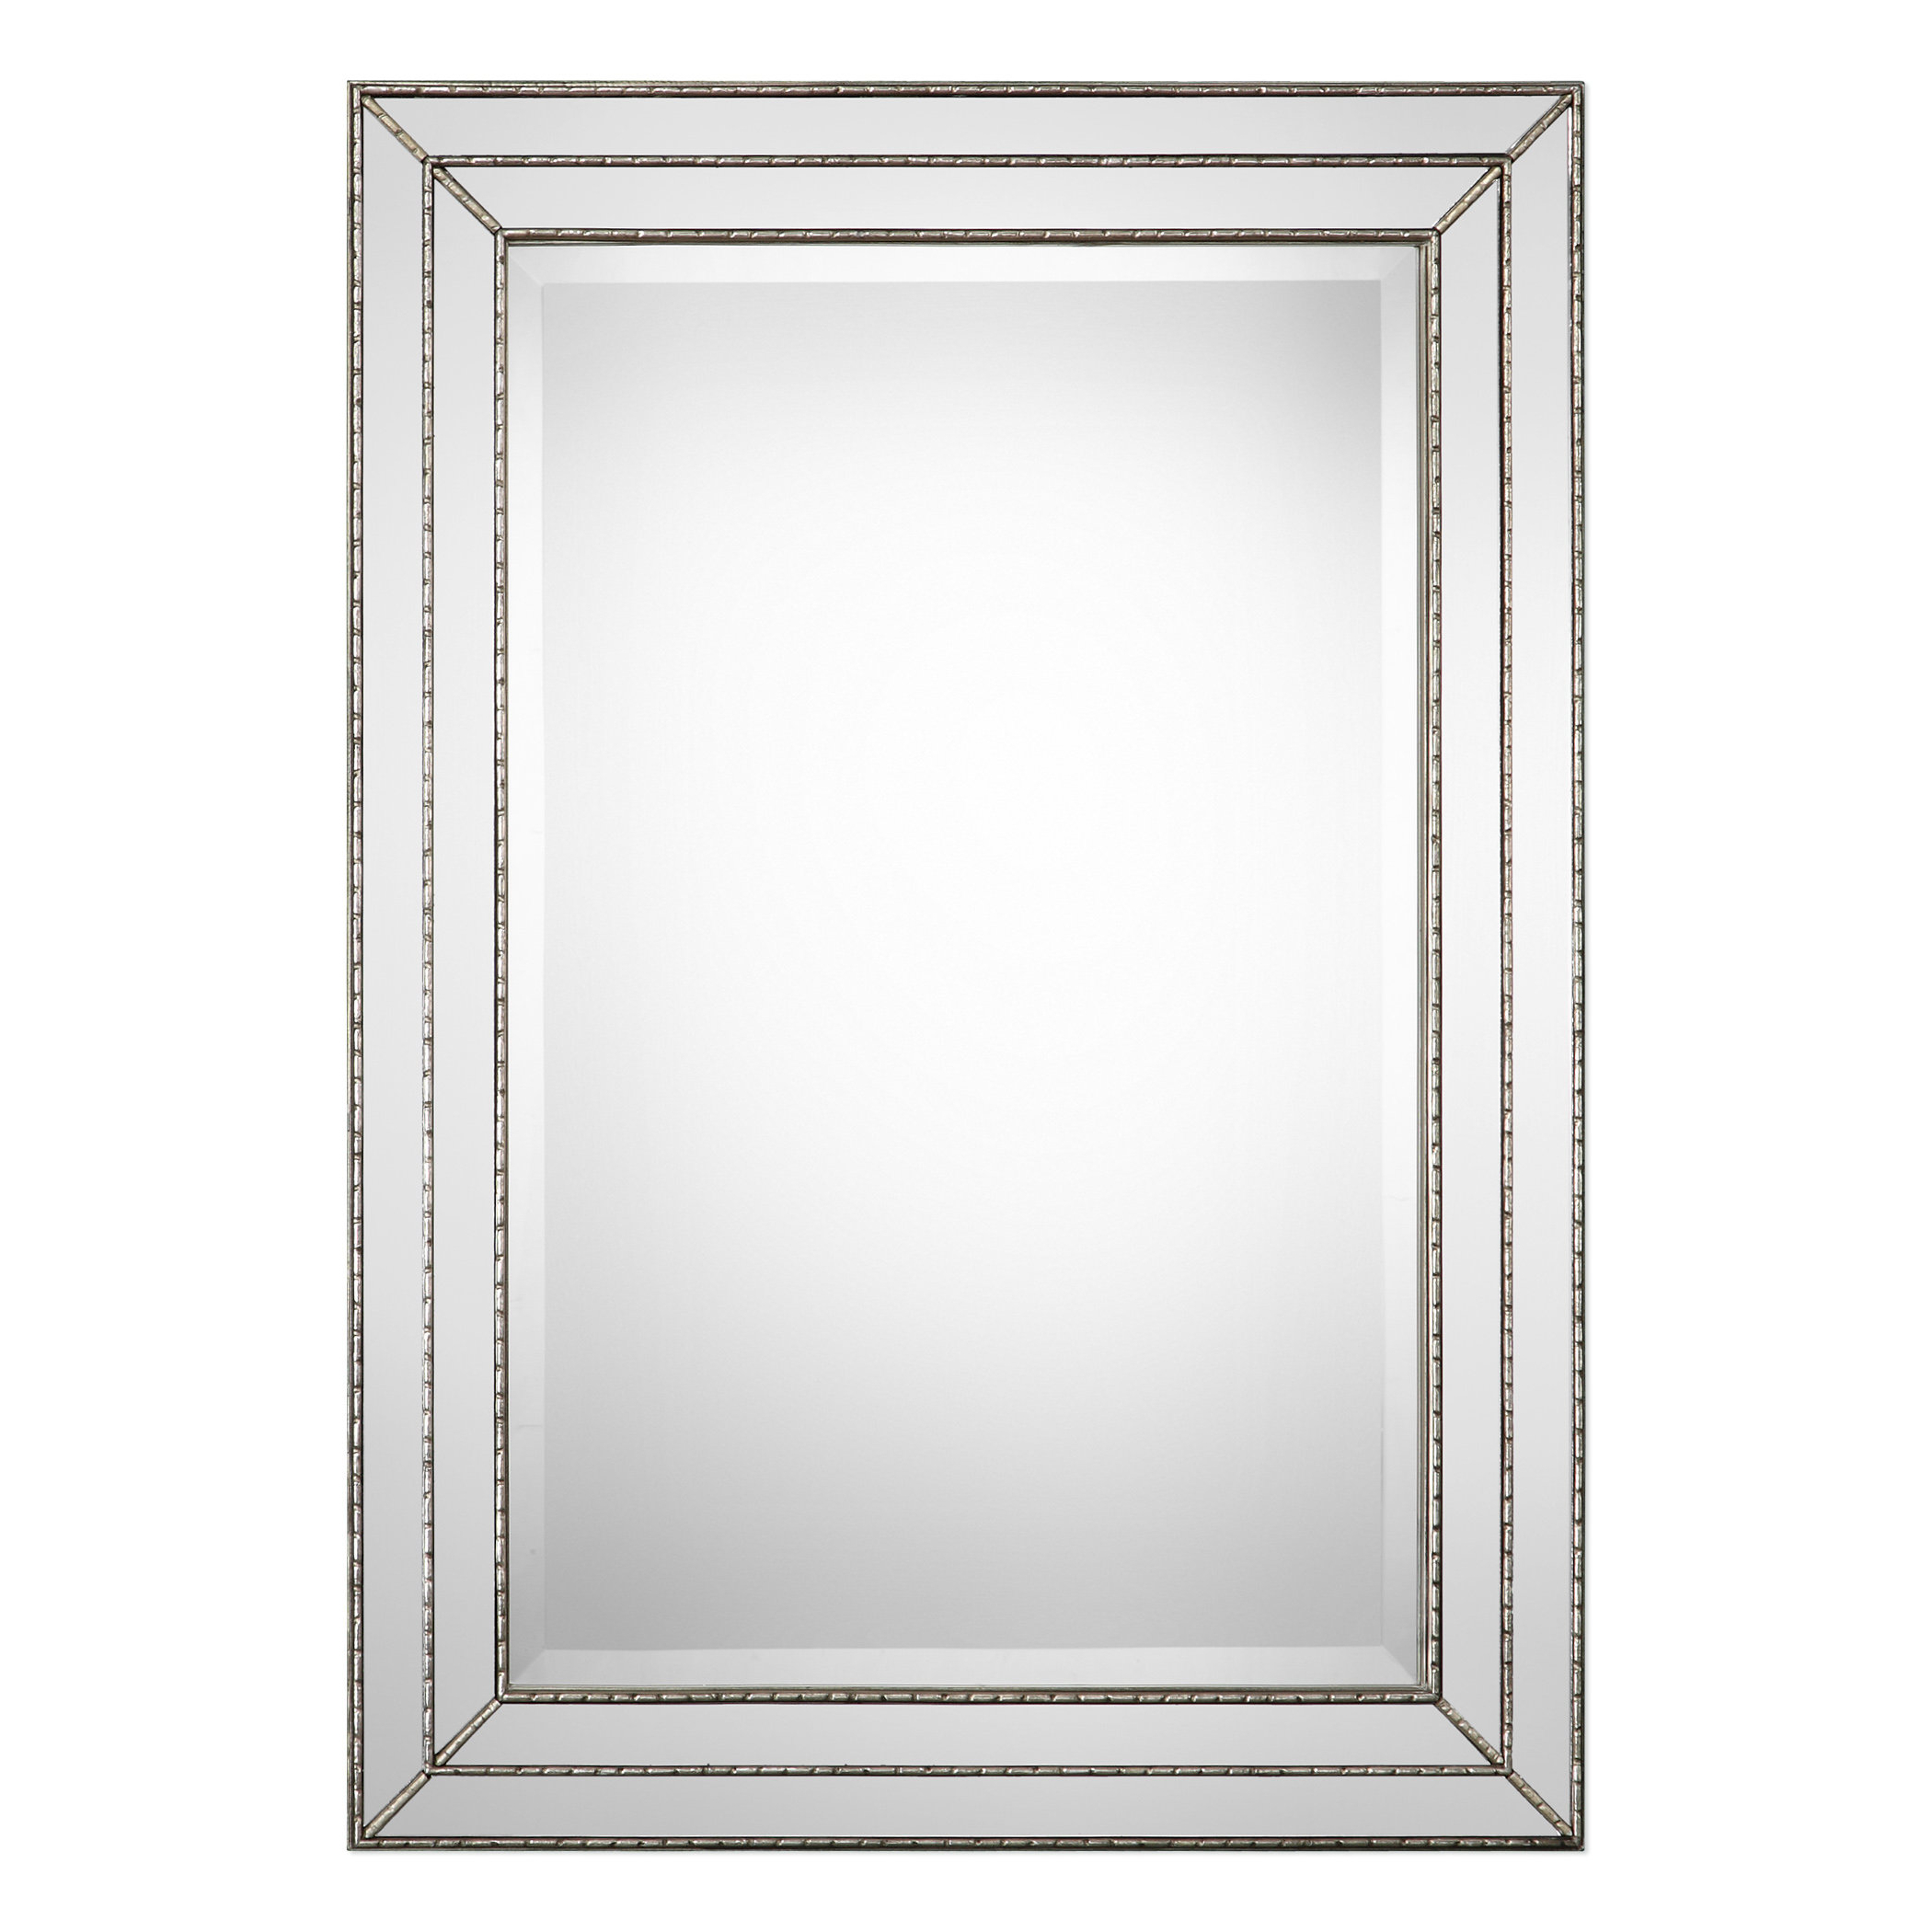 Trendy Greyleigh Willacoochee Traditional Beveled Accent Mirror Pertaining To Ulus Accent Mirrors (View 16 of 20)